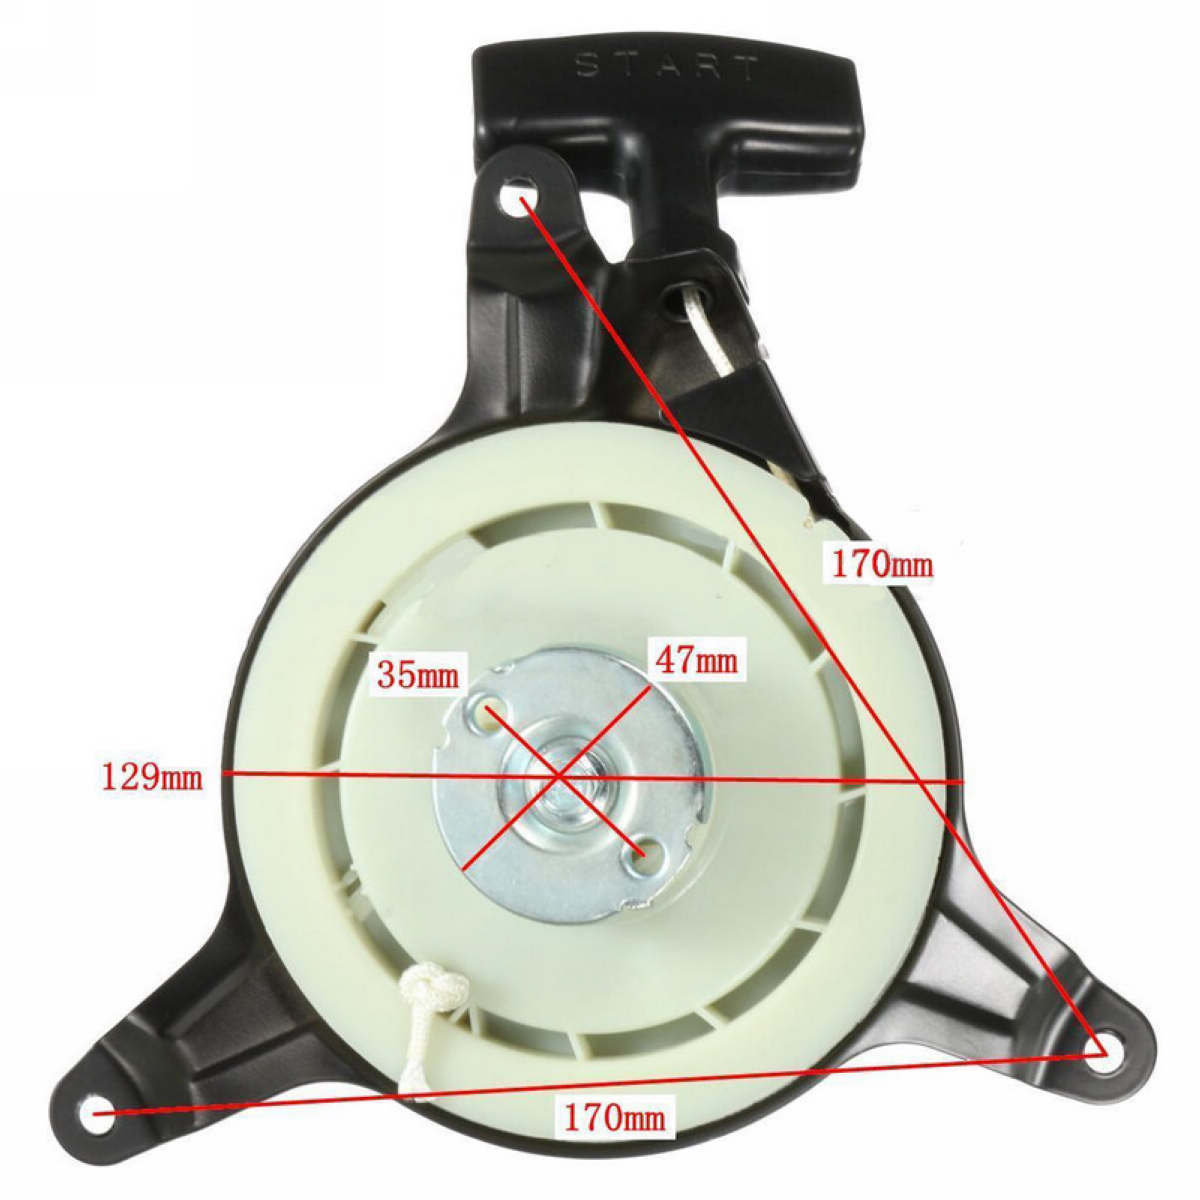 Recoil Starter Pull Start Replacement Assembly For 1P61P0 MTD Engine Push Mower 751-10299 951-10299A